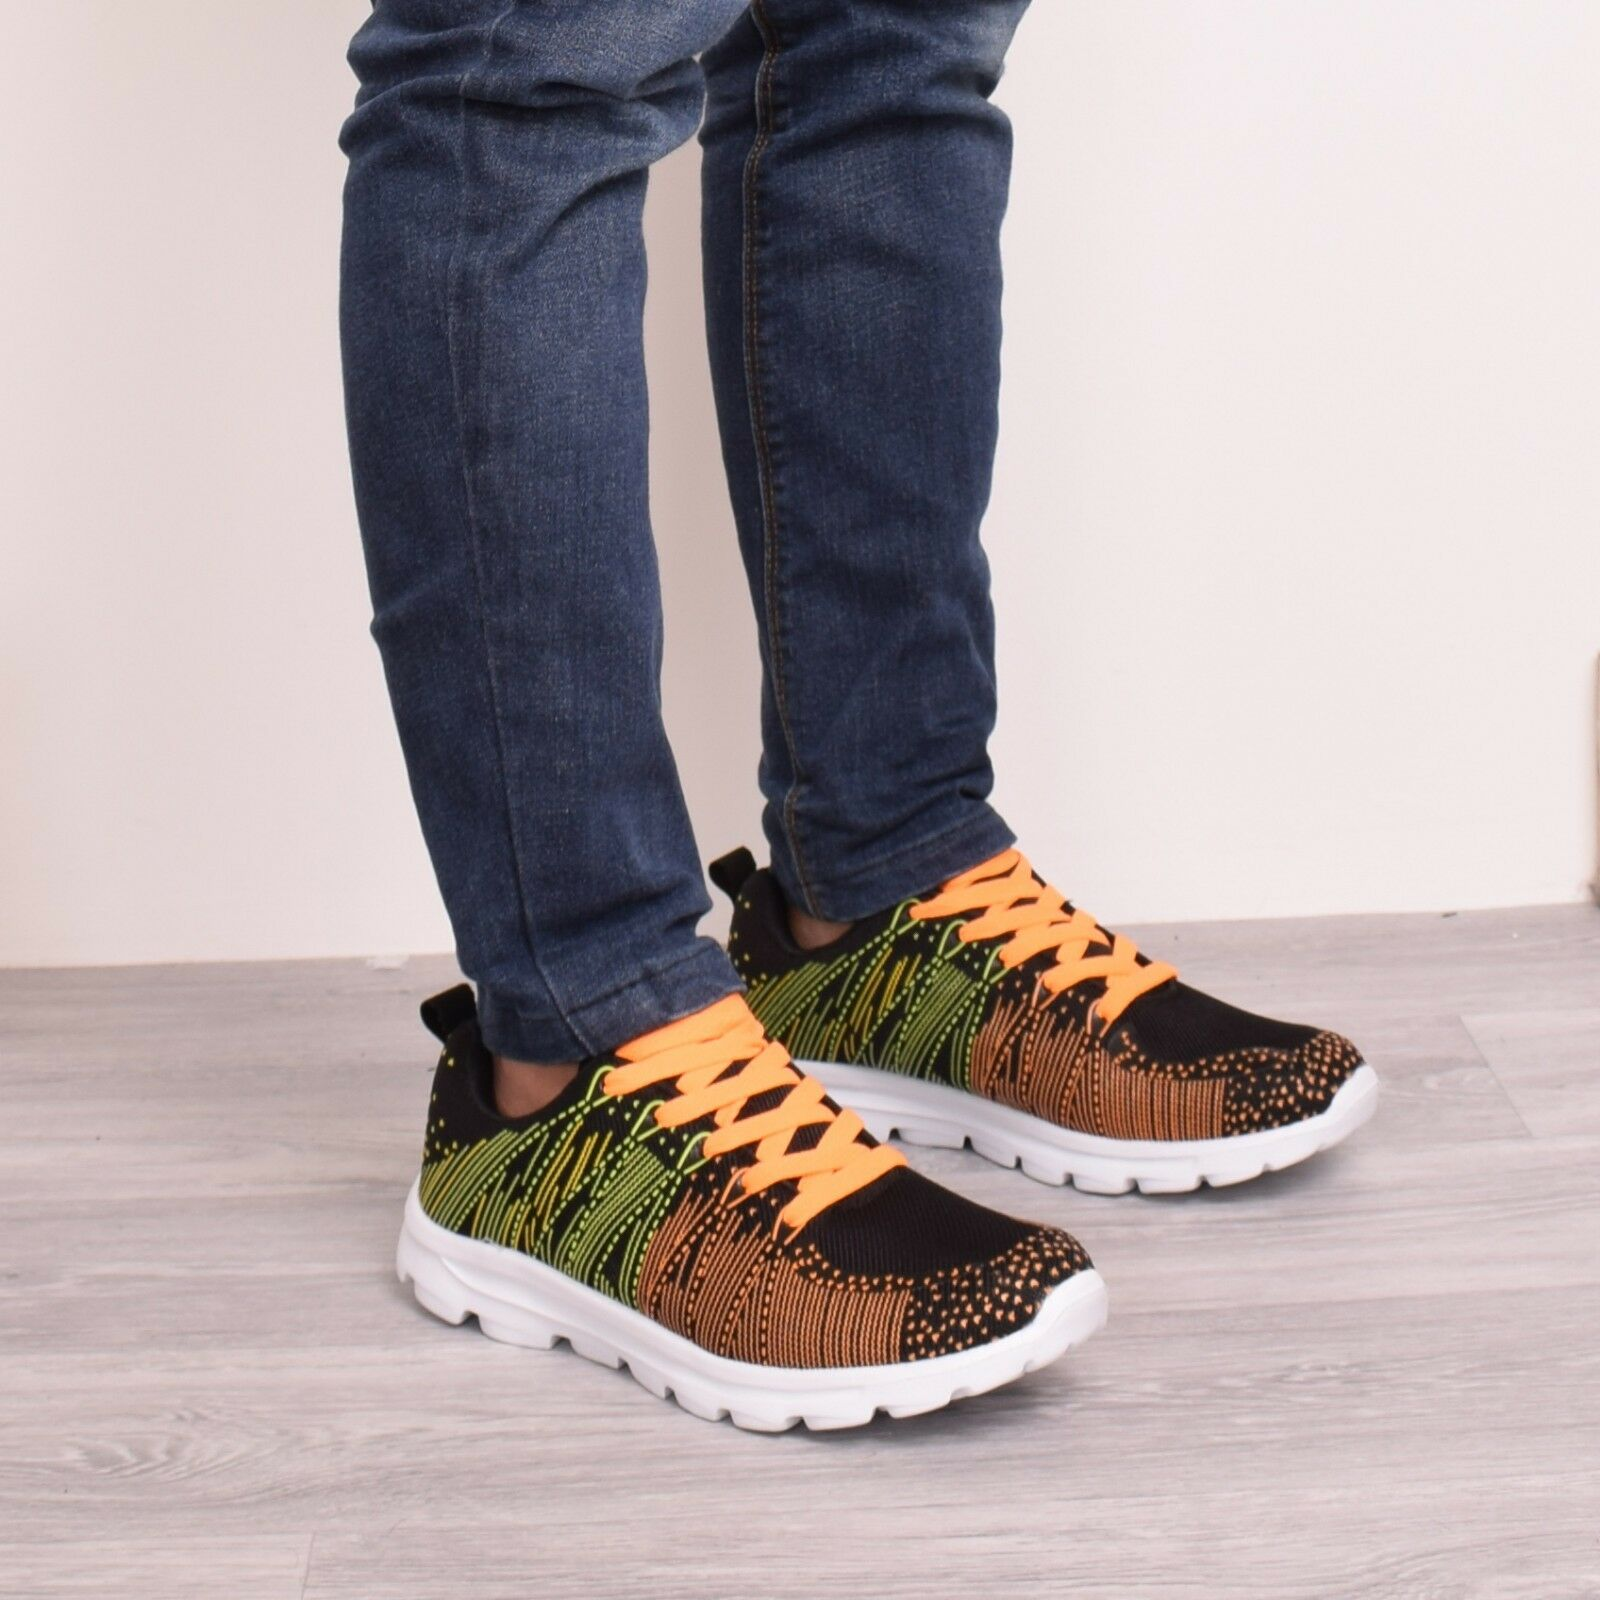 New Mens Running Gym Casual Walking Trainers Lace Up Light Weight Shoe Comfortable Special limited time Great discount